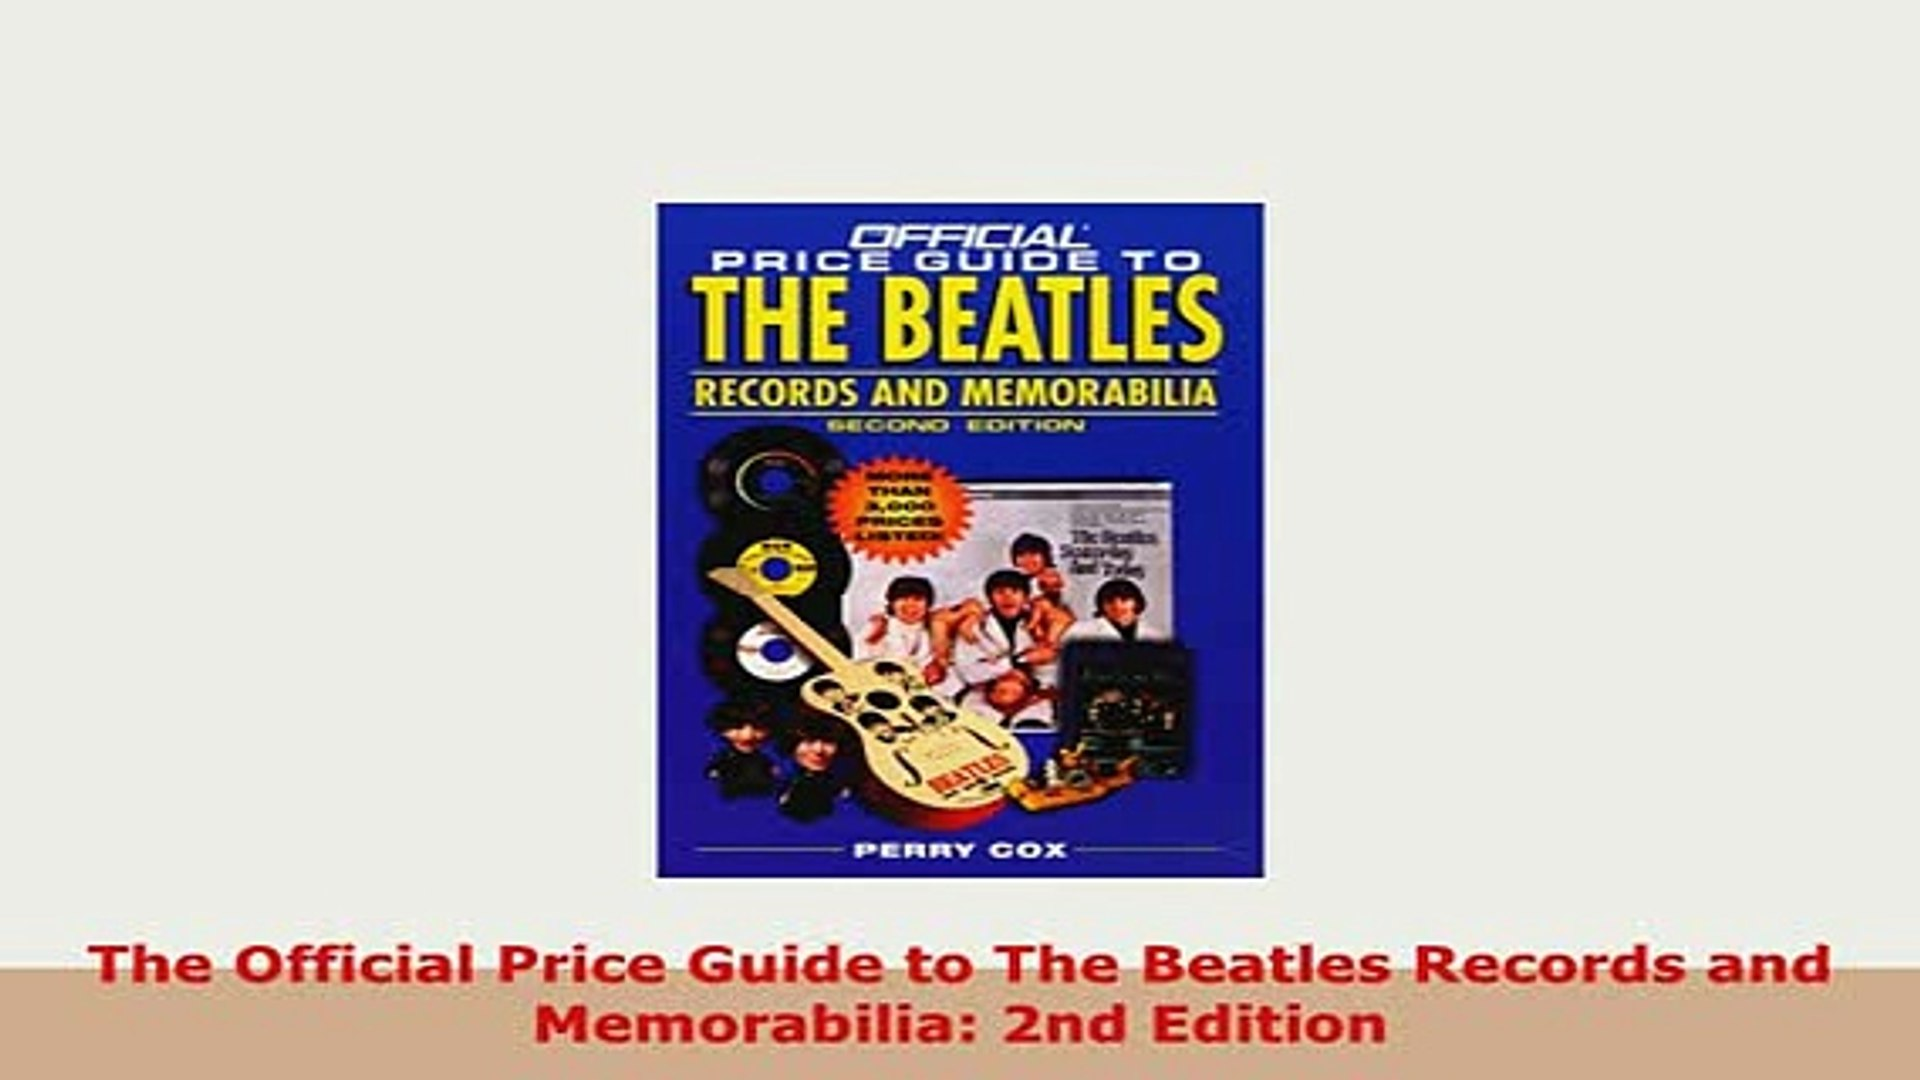 Download The Official Price Guide to The Beatles Records and Memorabilia  2nd Edition Free Books